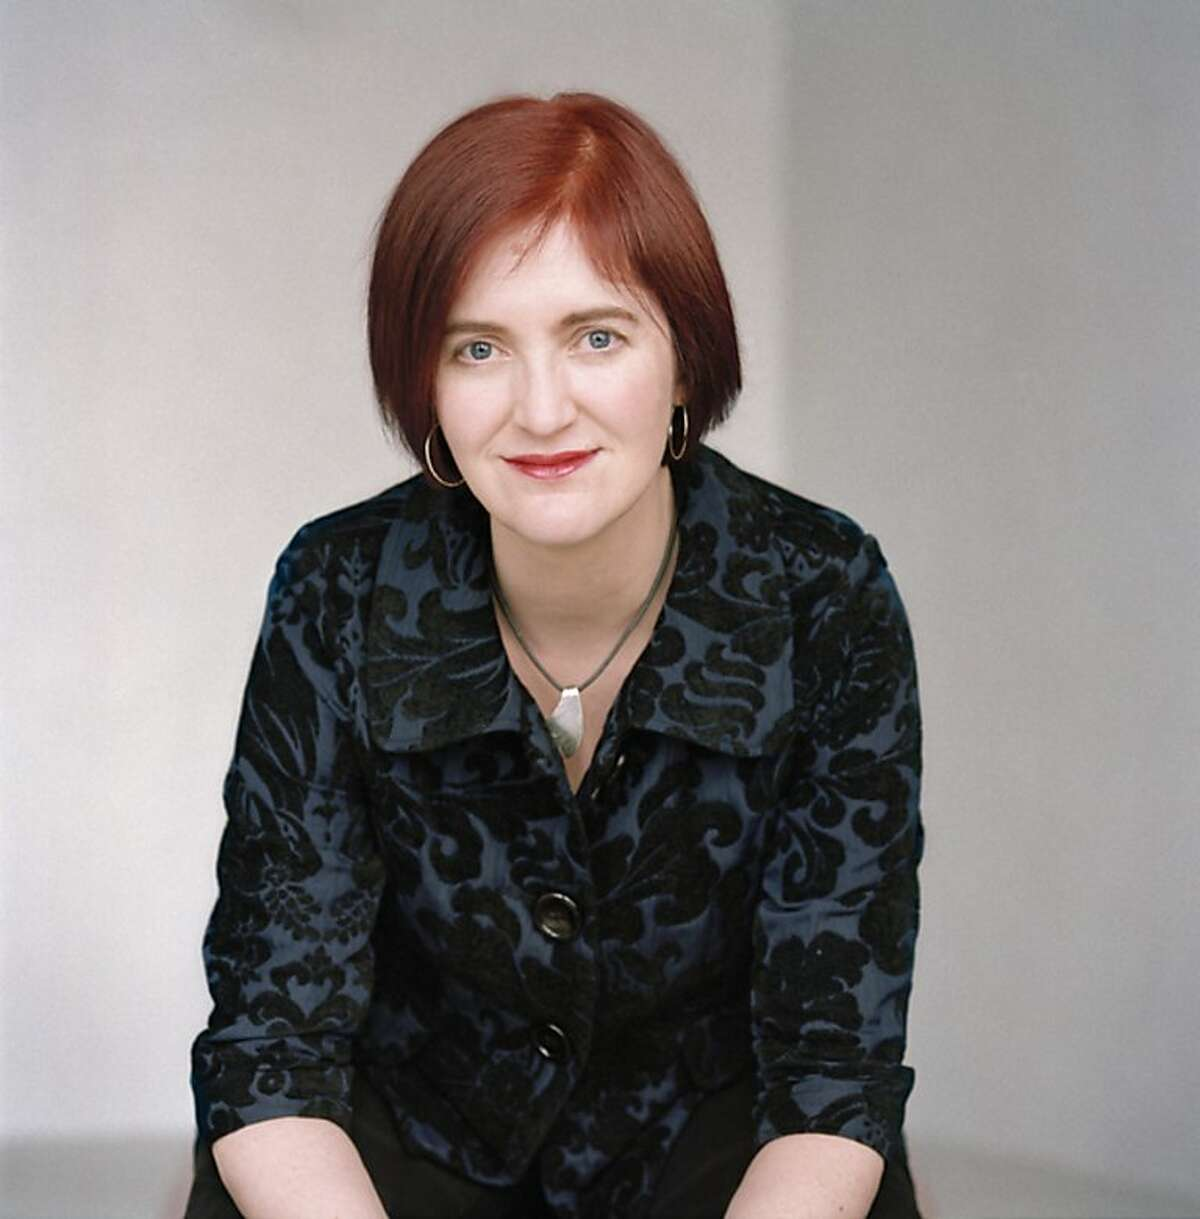 emma donaghue, author of the new book